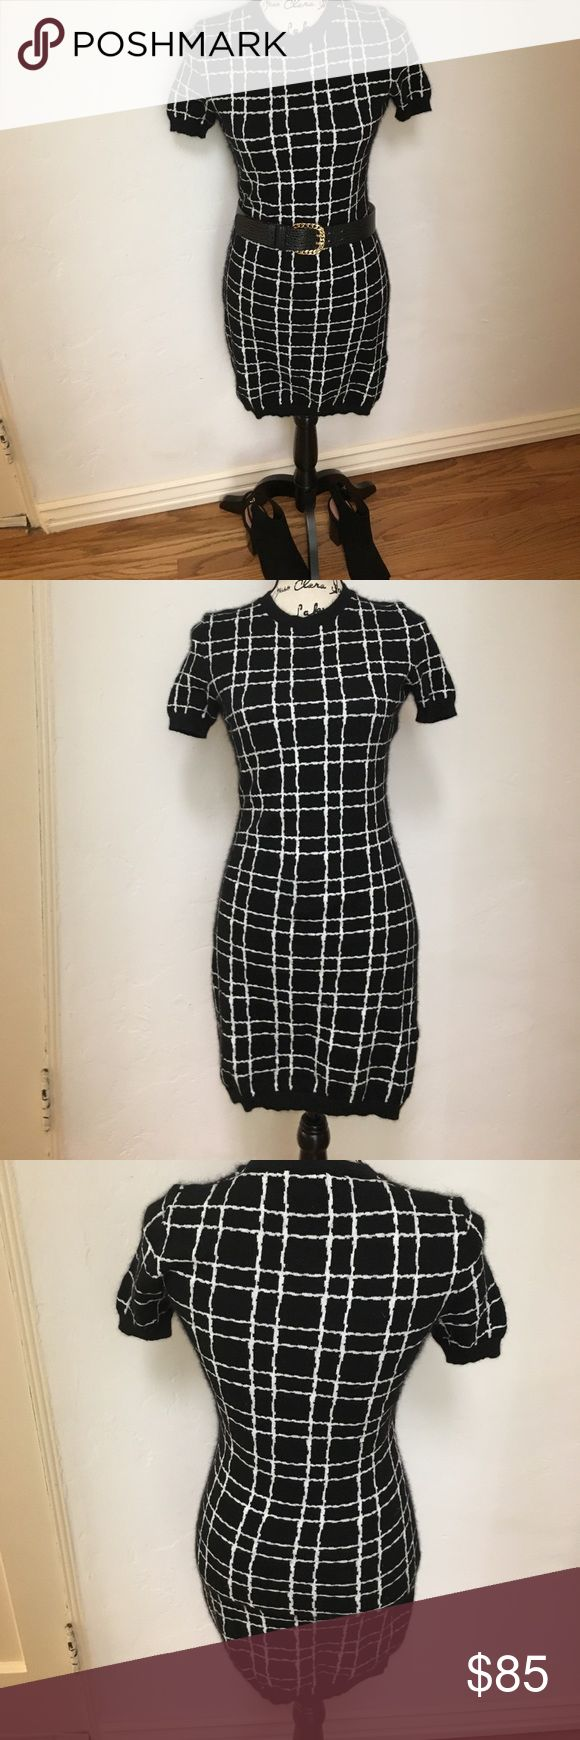 Sale! Luxe Authentic DSQUARED2 Angora dress Beautifully soft. Cute short sleeve dress worn as is or looks great over leggings. 73% Angora 23% polyamide. Like new. Made in Italy. DSQUARED Dresses Mini